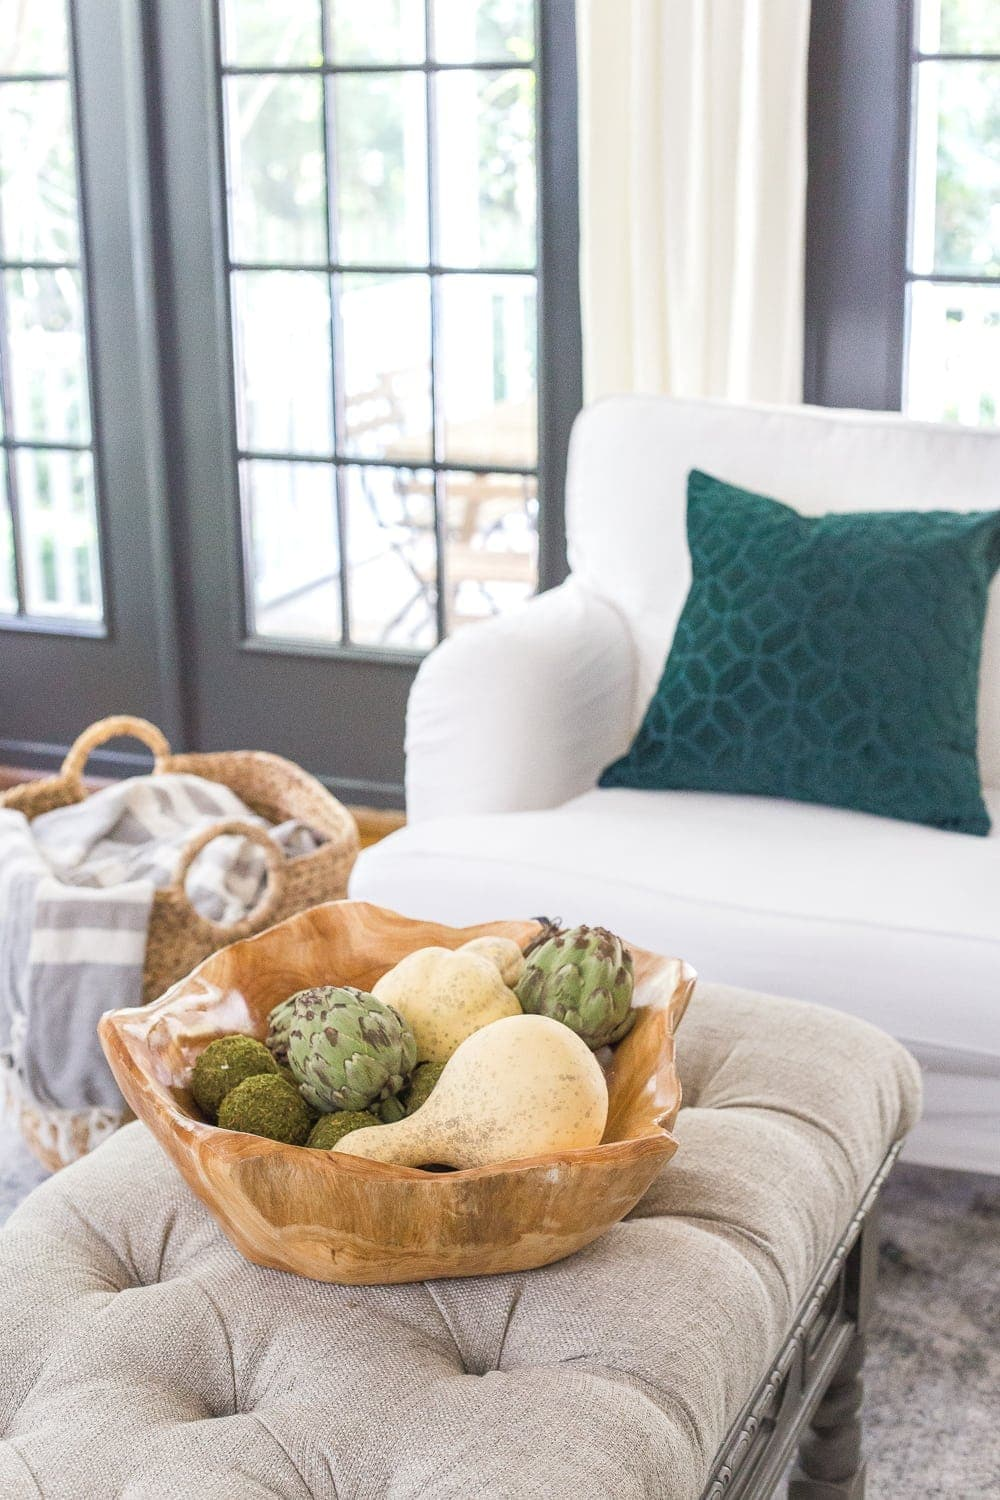 Money Saving Decorating Tips For Adding Coziness And Texture To A Space For  Fall Decor